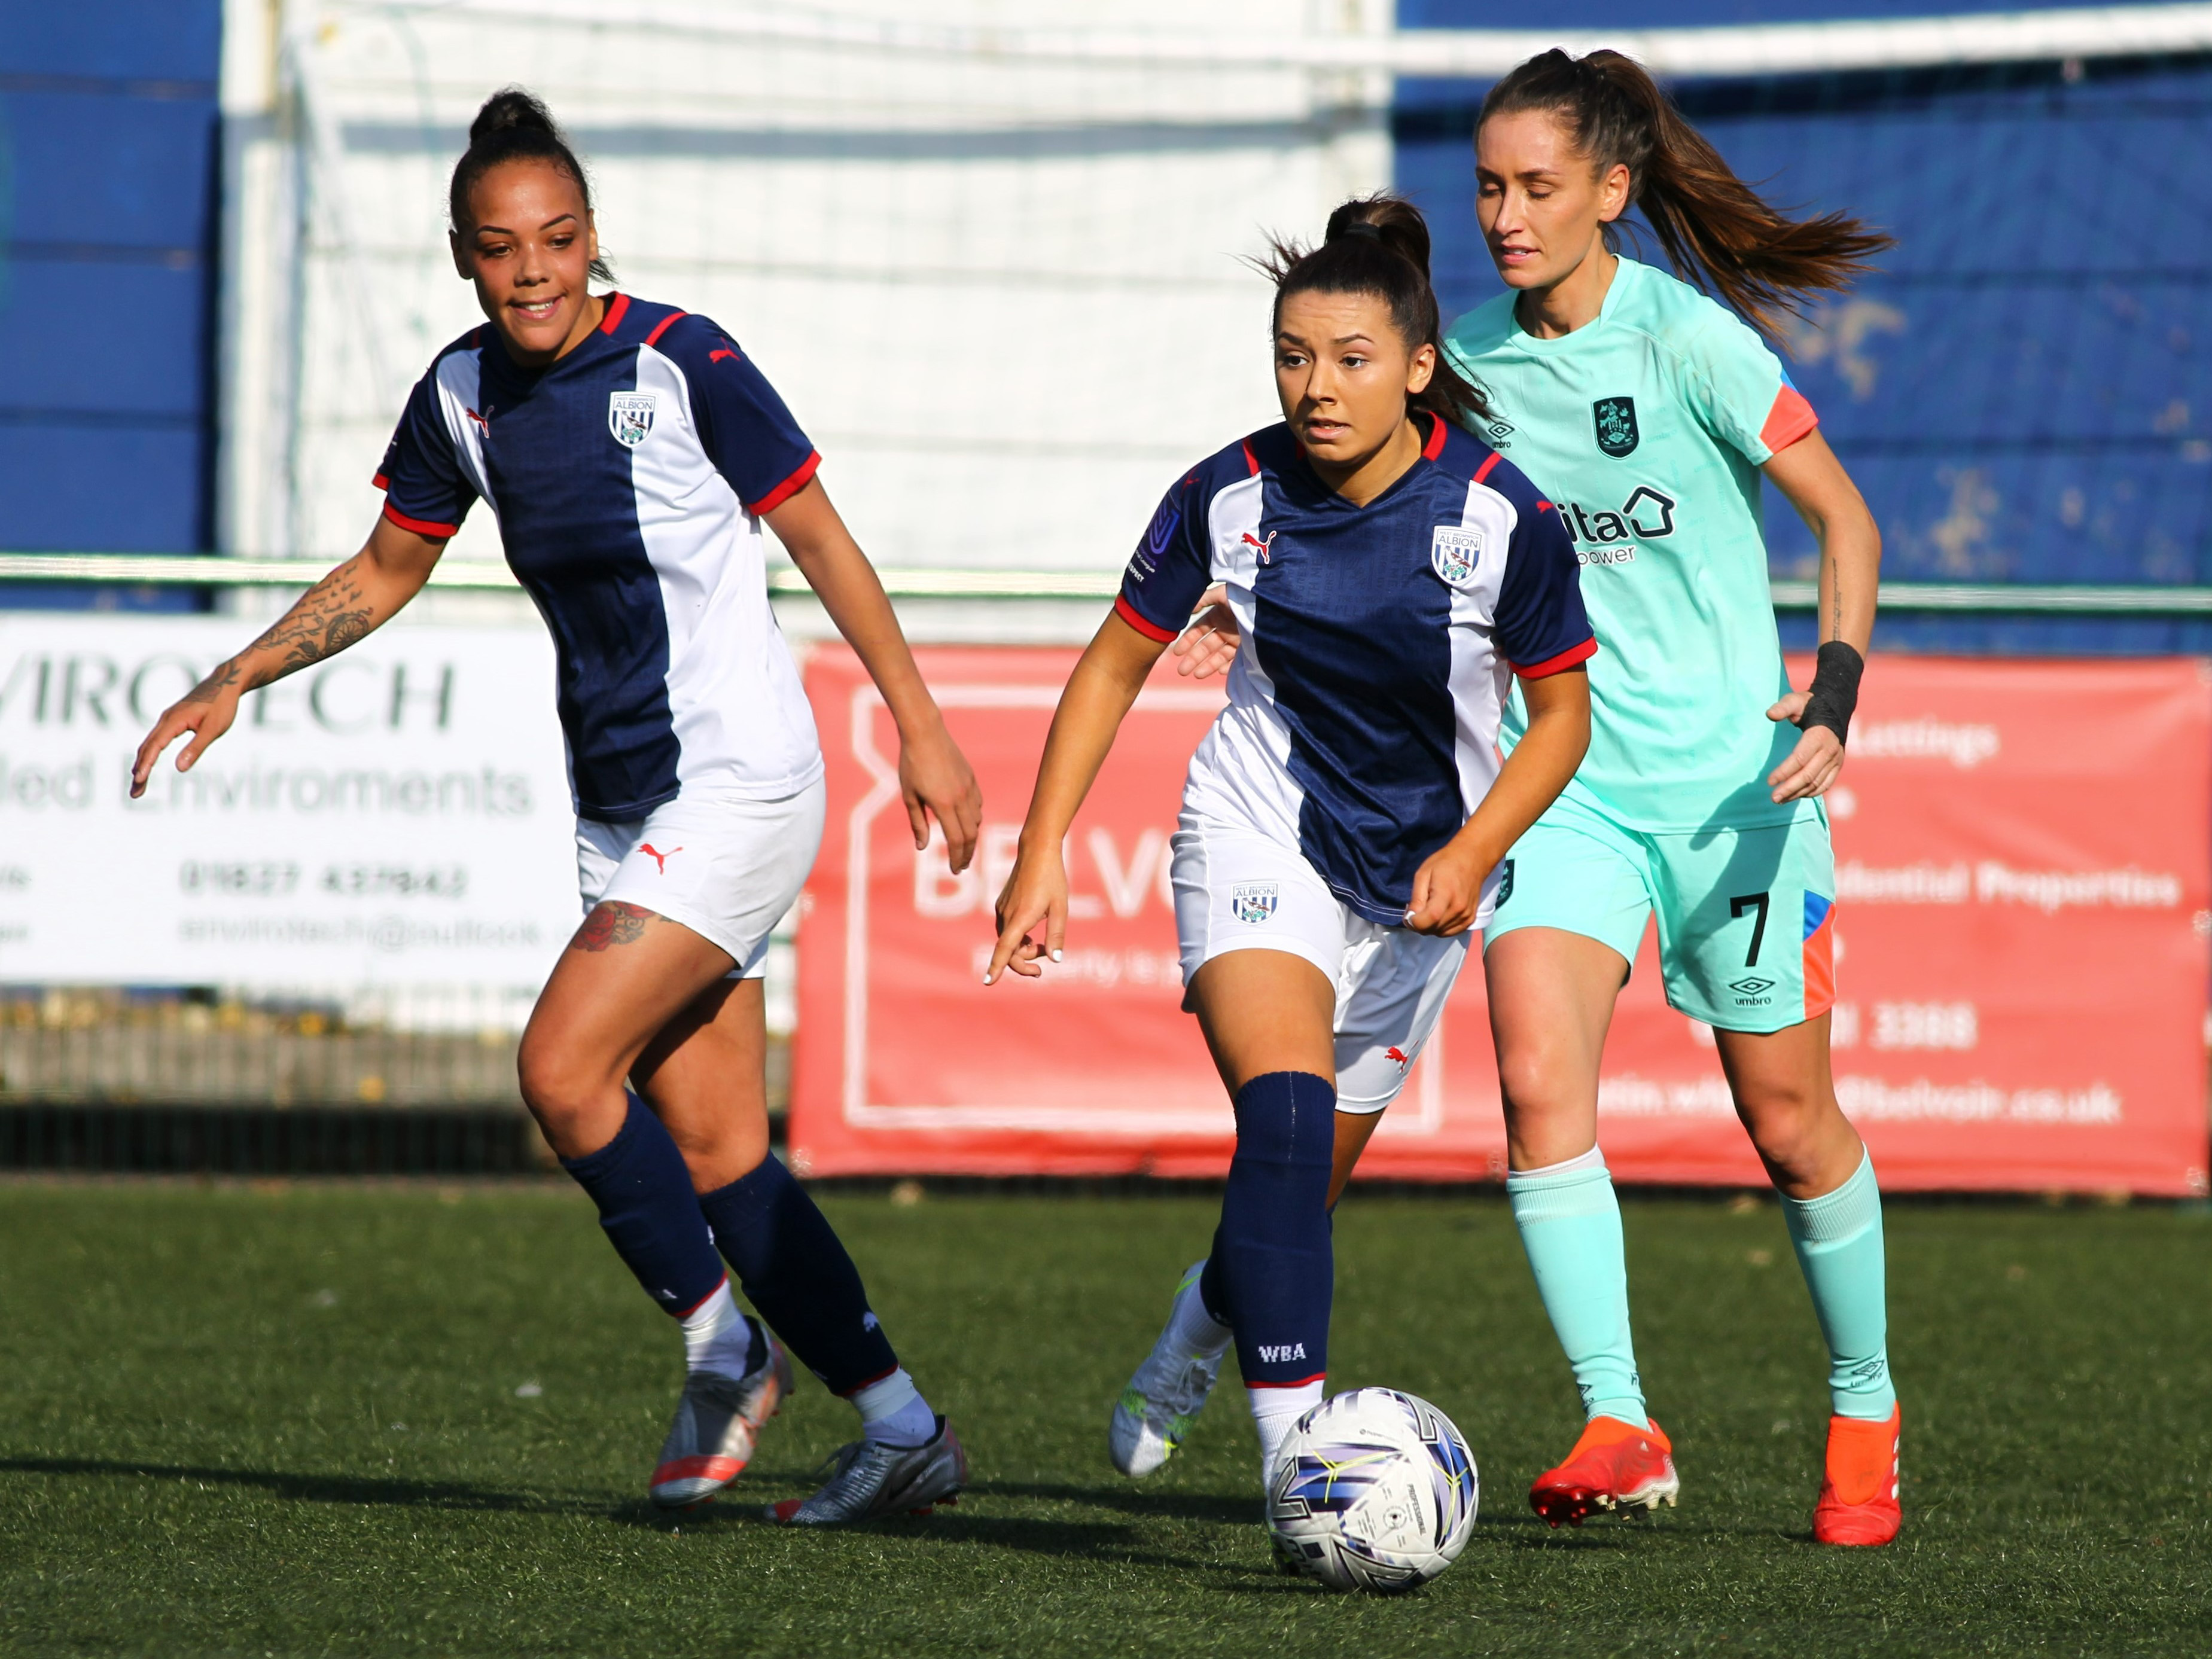 Albion Women succumbed to their first defeat in four league games at home to Huddersfield Town on Sunday.